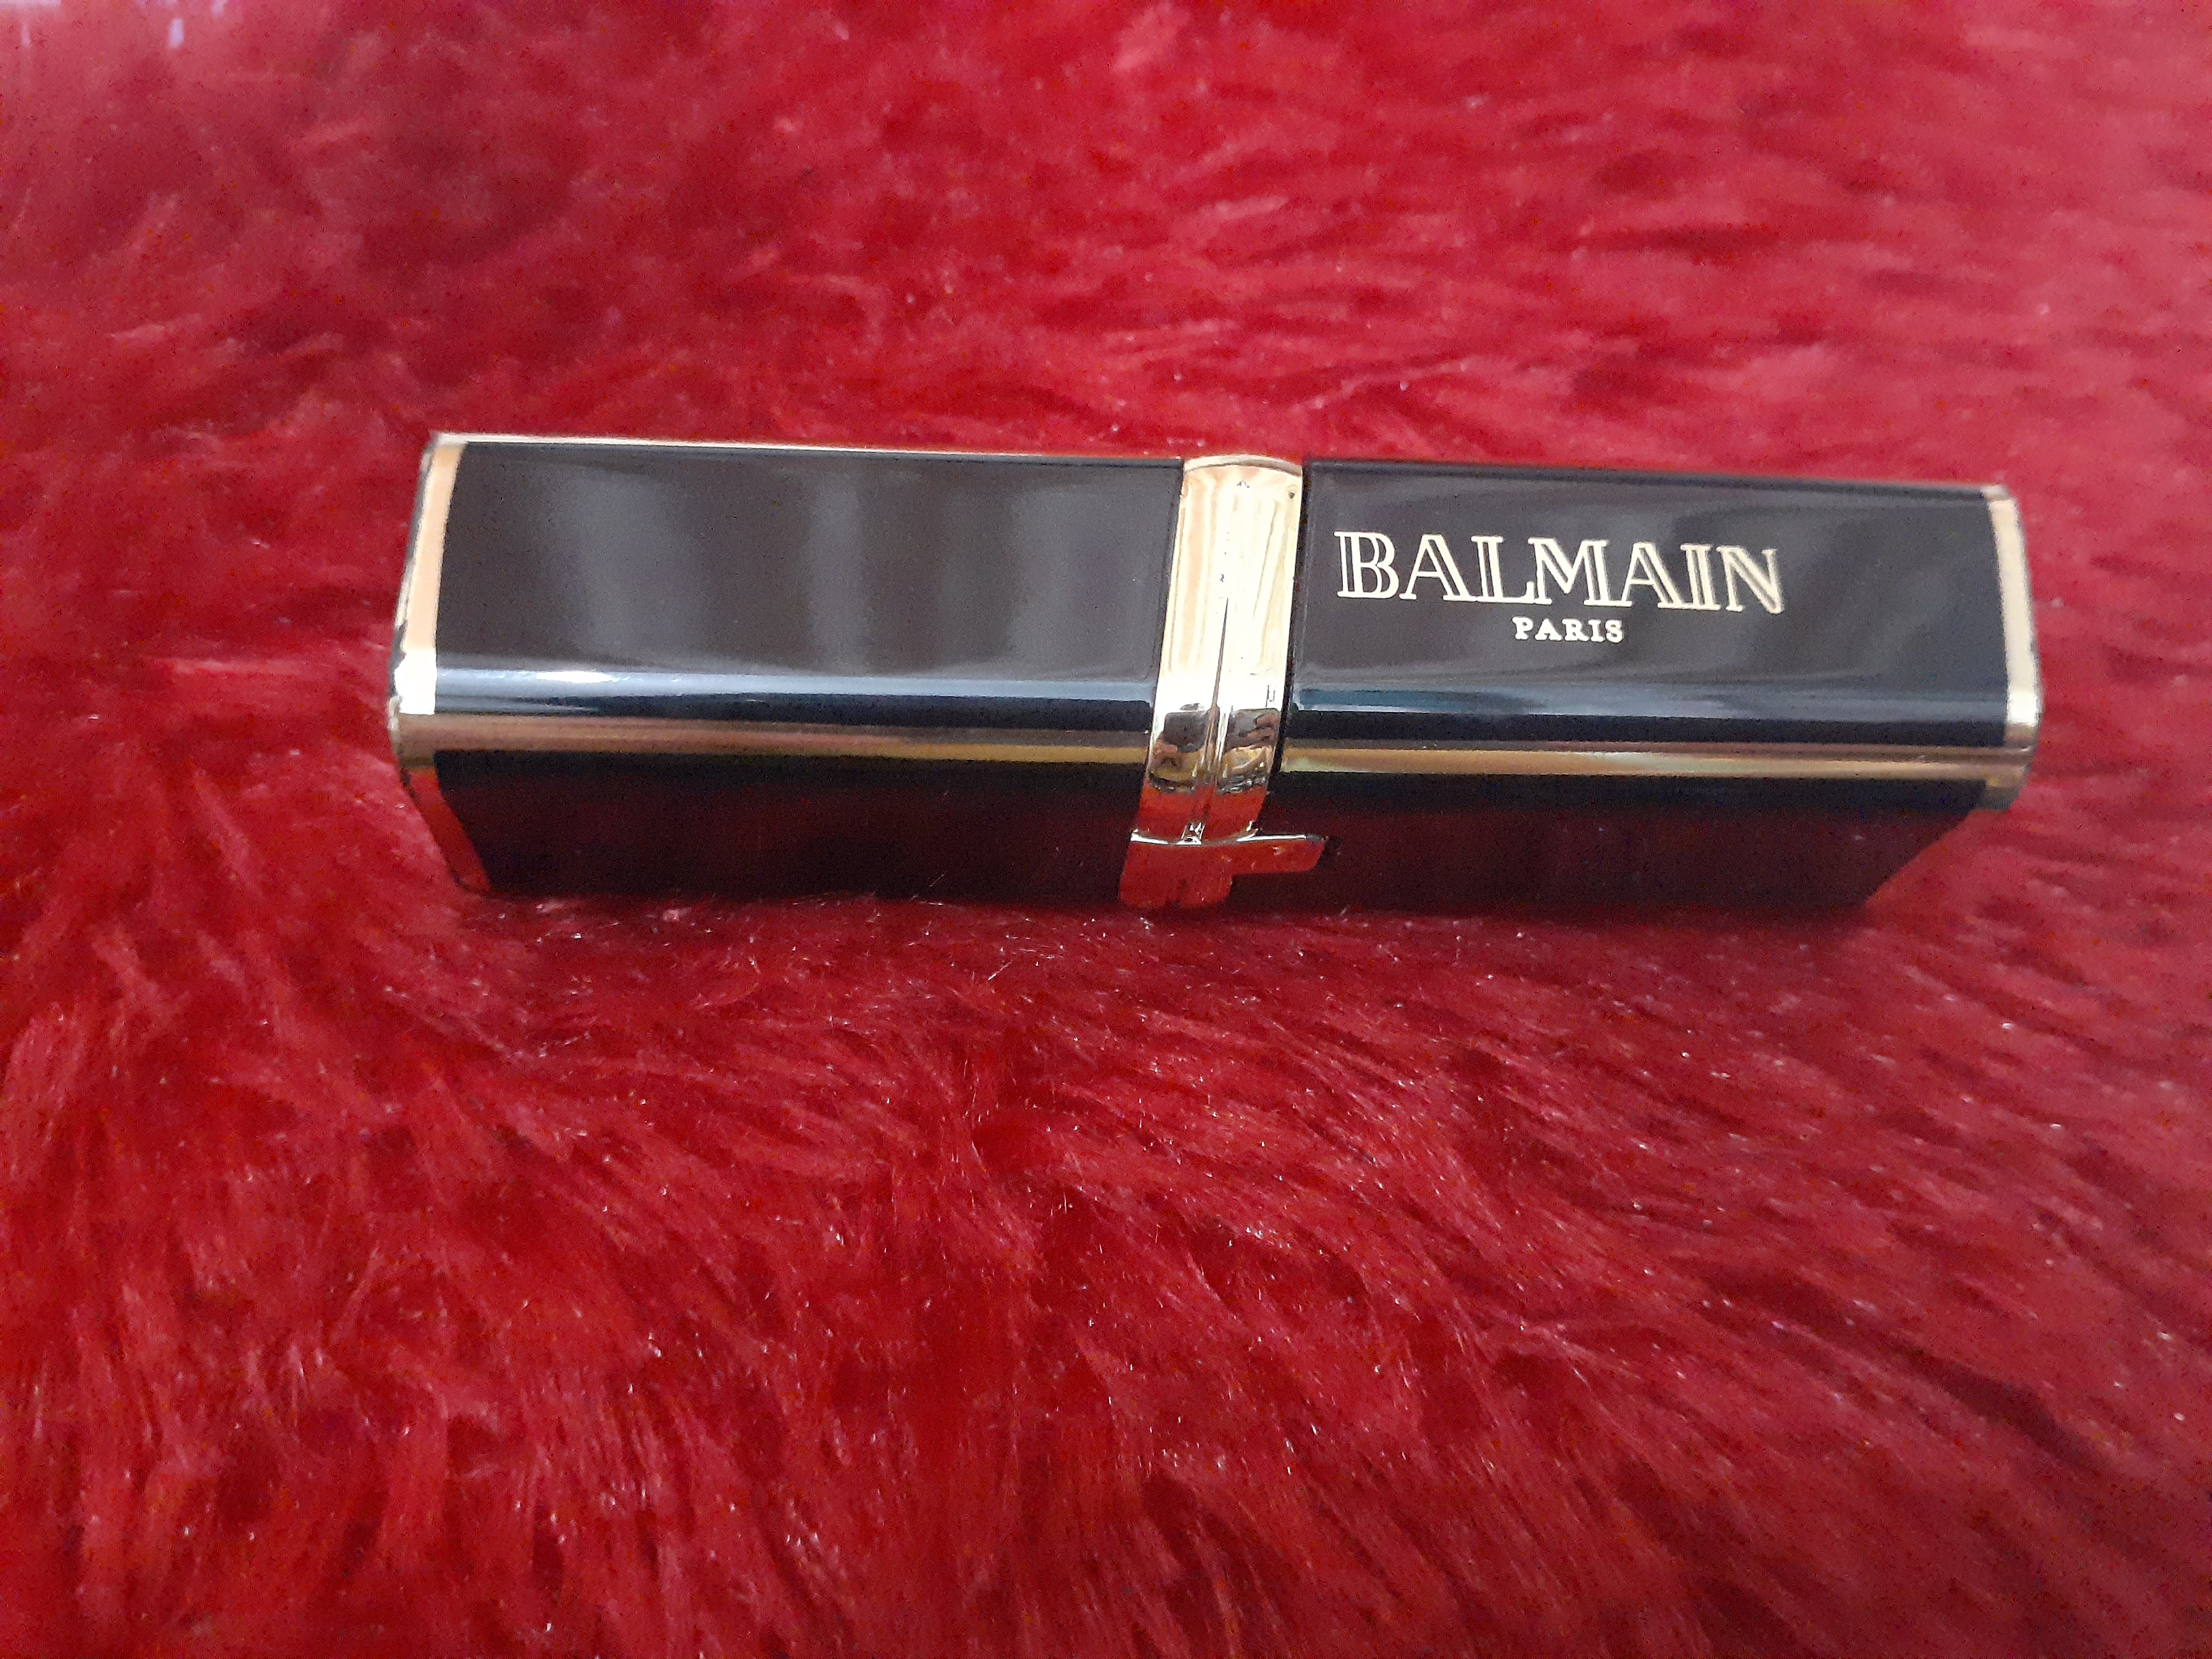 L'Oreal Paris Balmain Limited Edition Color Riche Matte Lipstick-Must try product-By priya_singh3